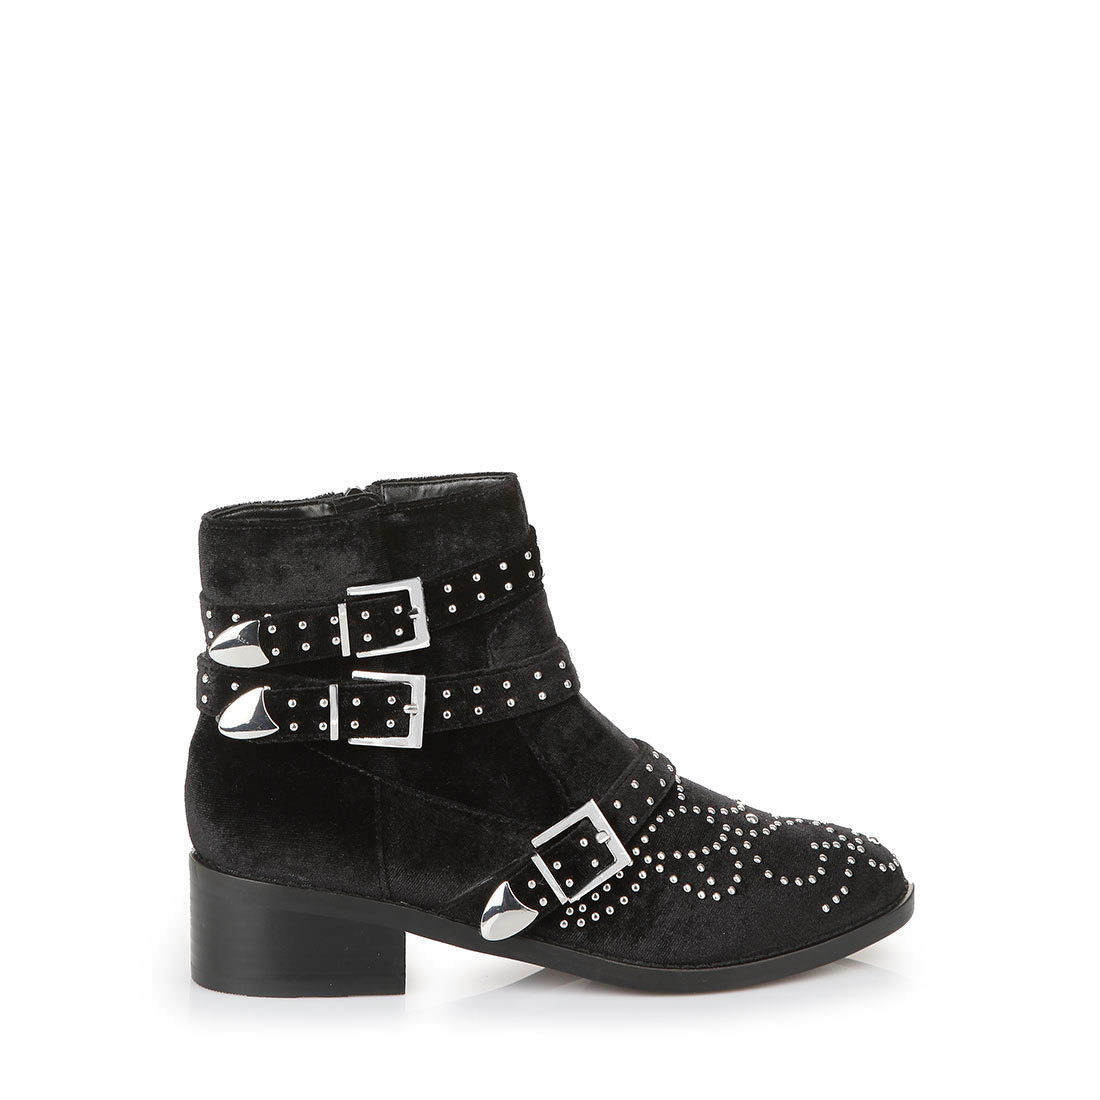 shopbop - boots fastest free shipping worldwide on boots & free easy returns.